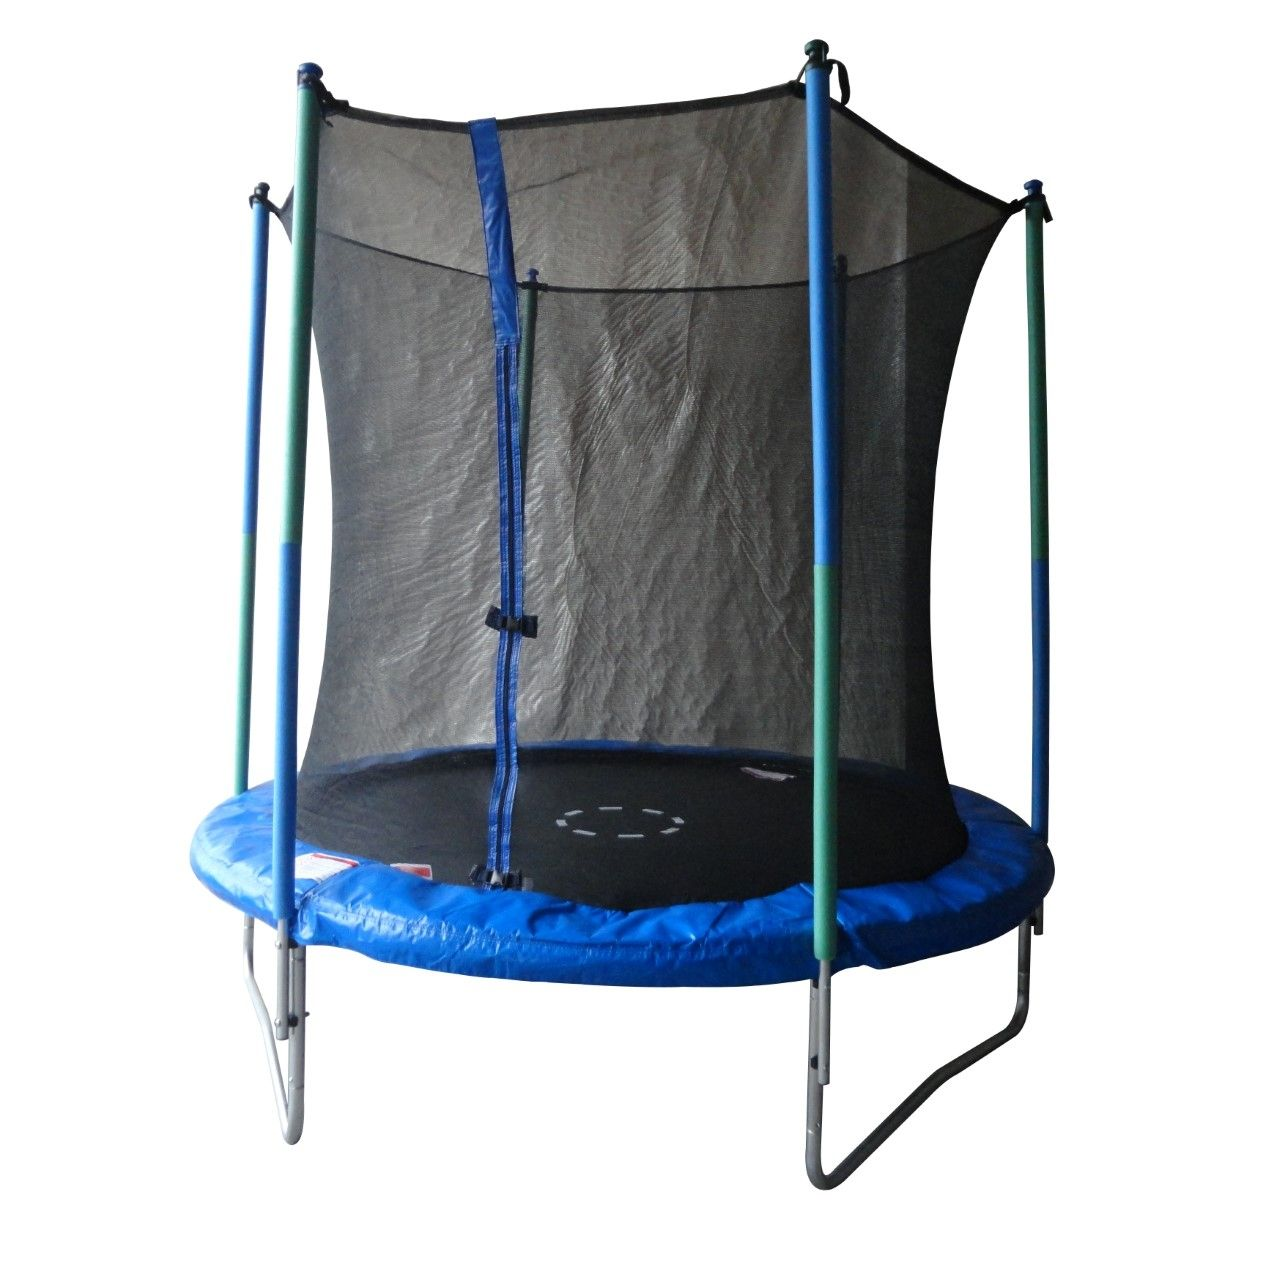 Body Sculpture Trampoline Exercise Fitness Skip Rope